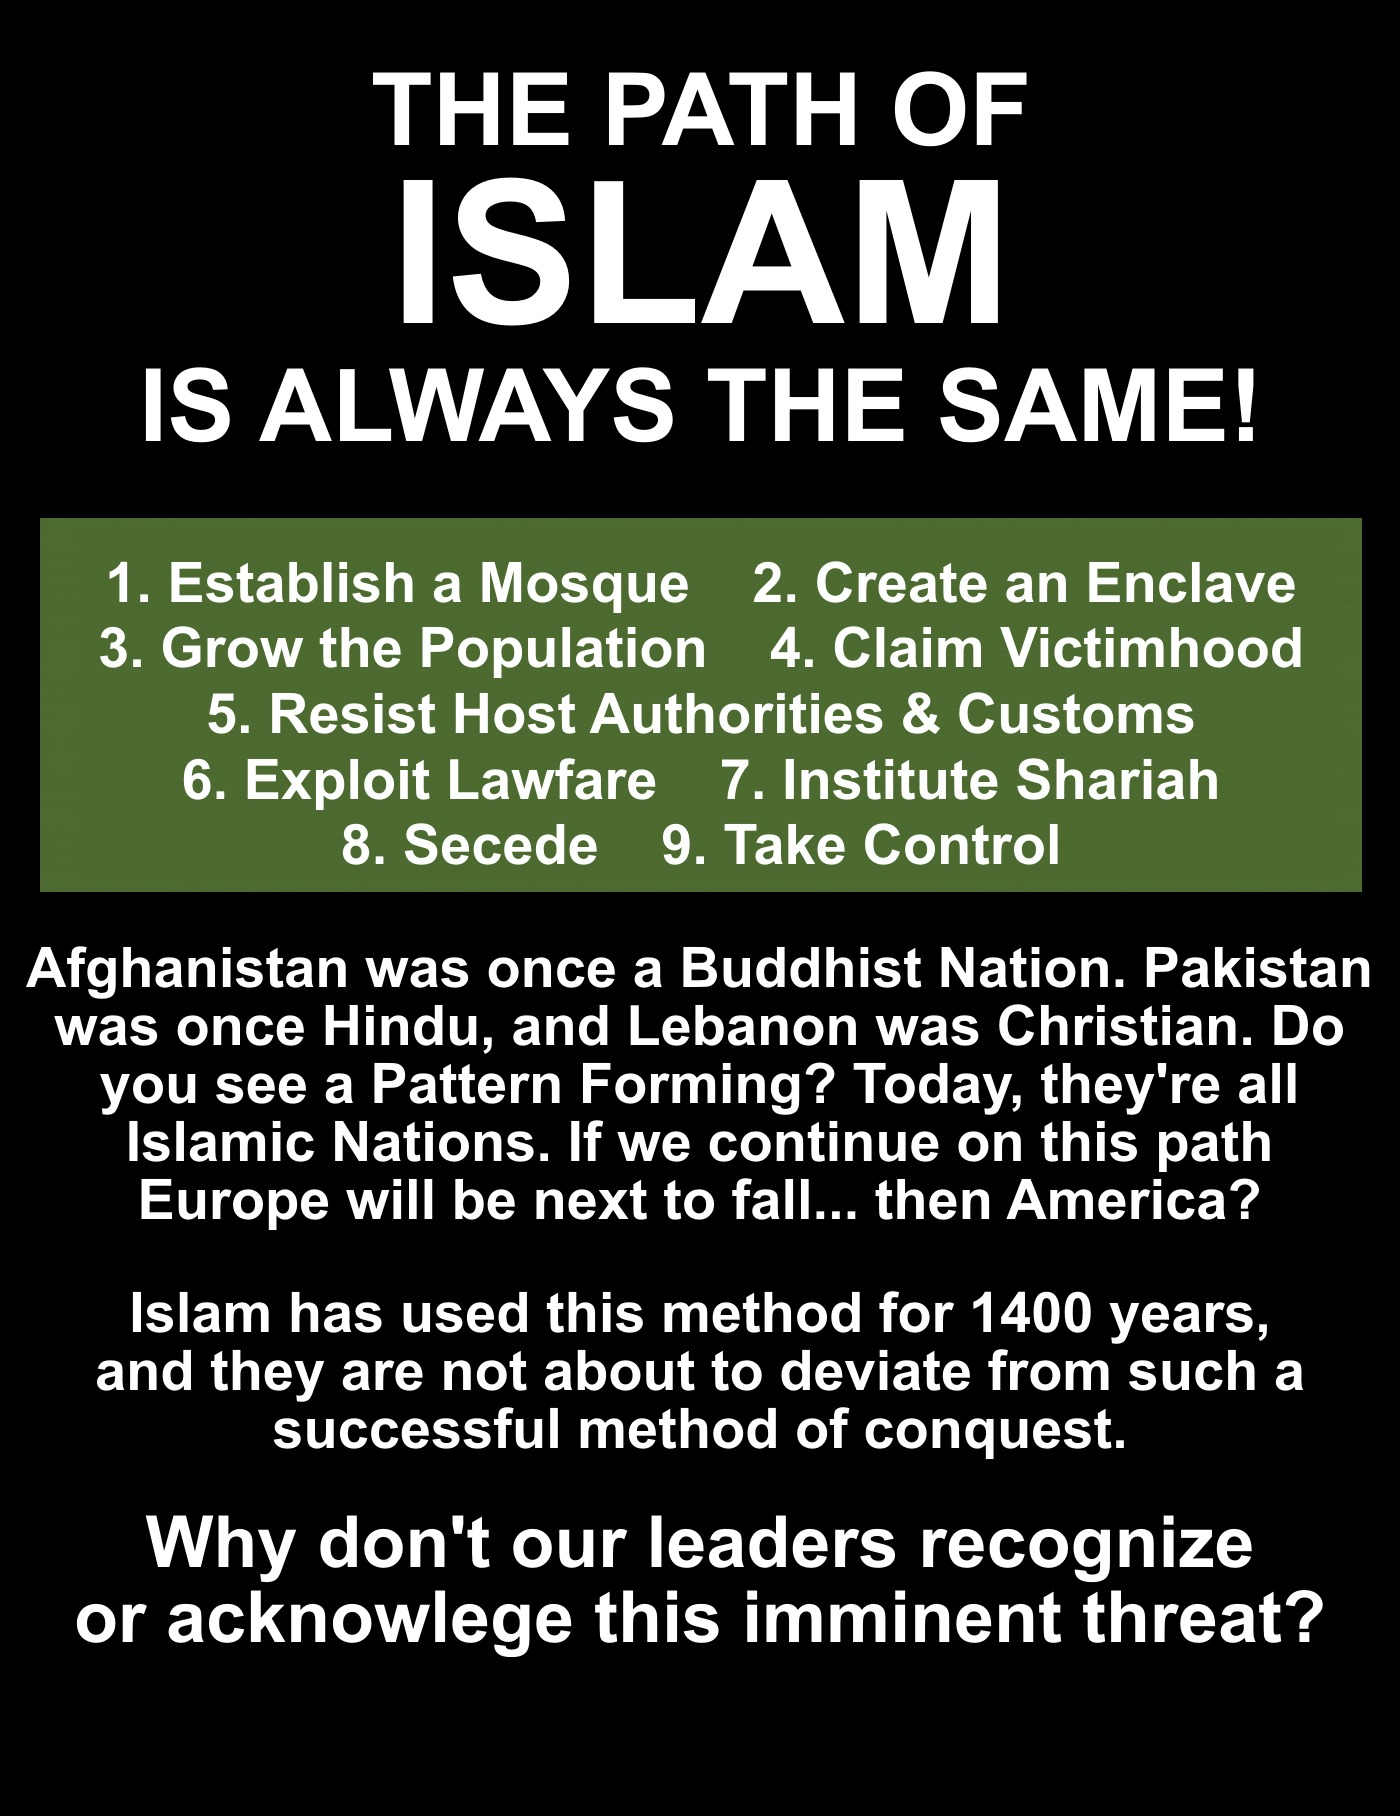 The path of Islamic Conquest